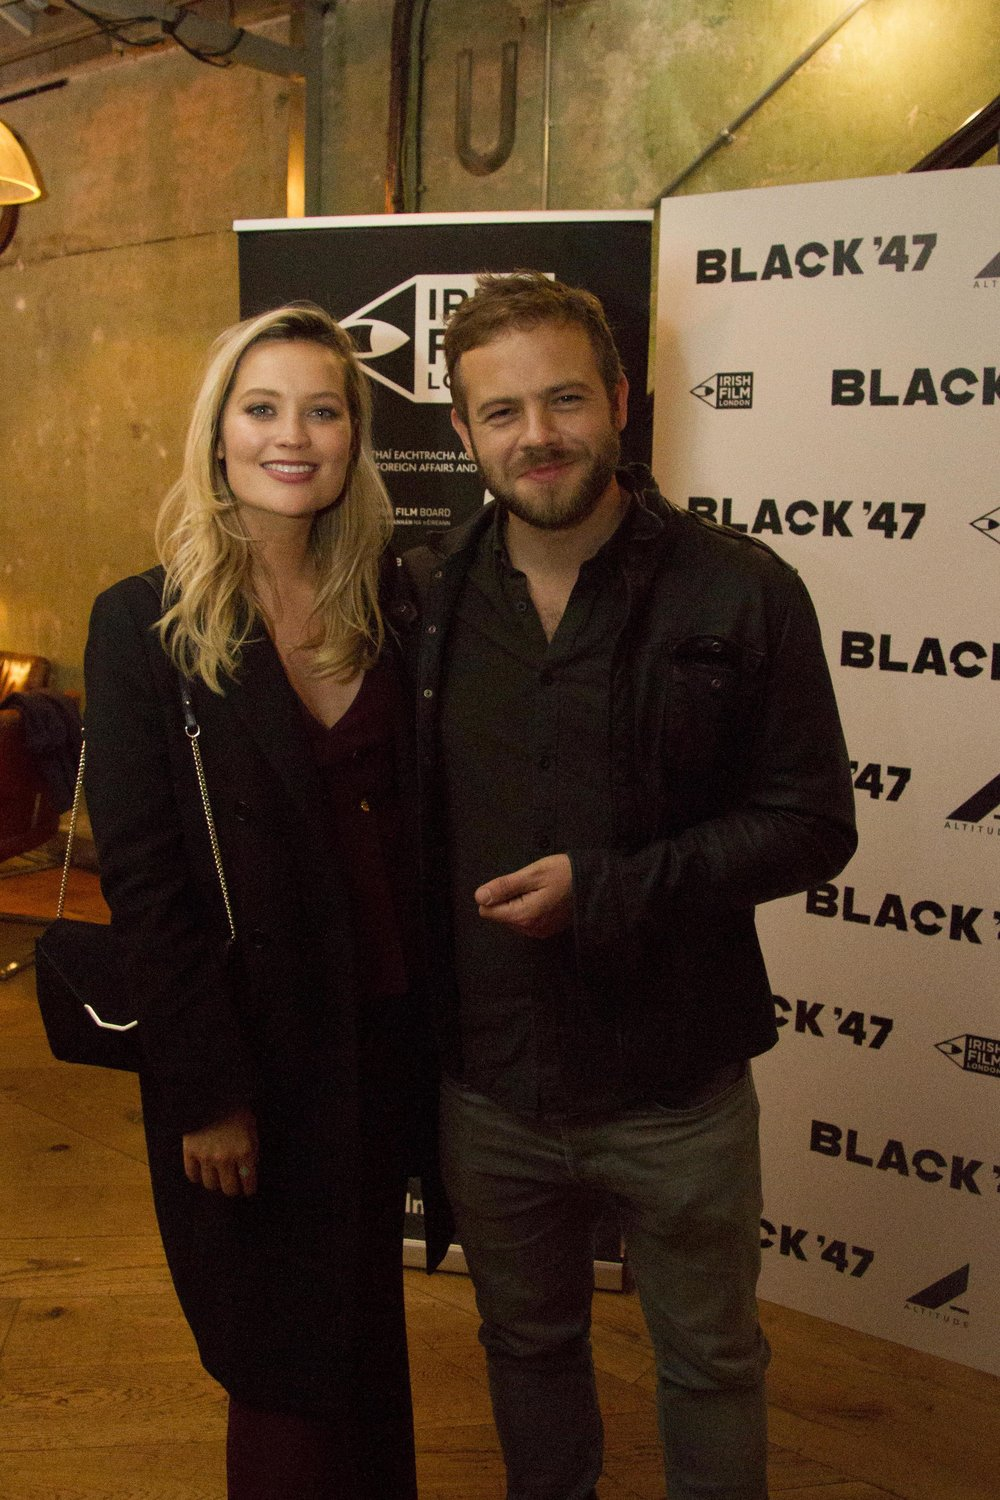 Black 47 London Premiere 2018 Photos courtesy of Noel Mullen Irish Film London 67 Laura Whitmore and Moe Dunford.jpg